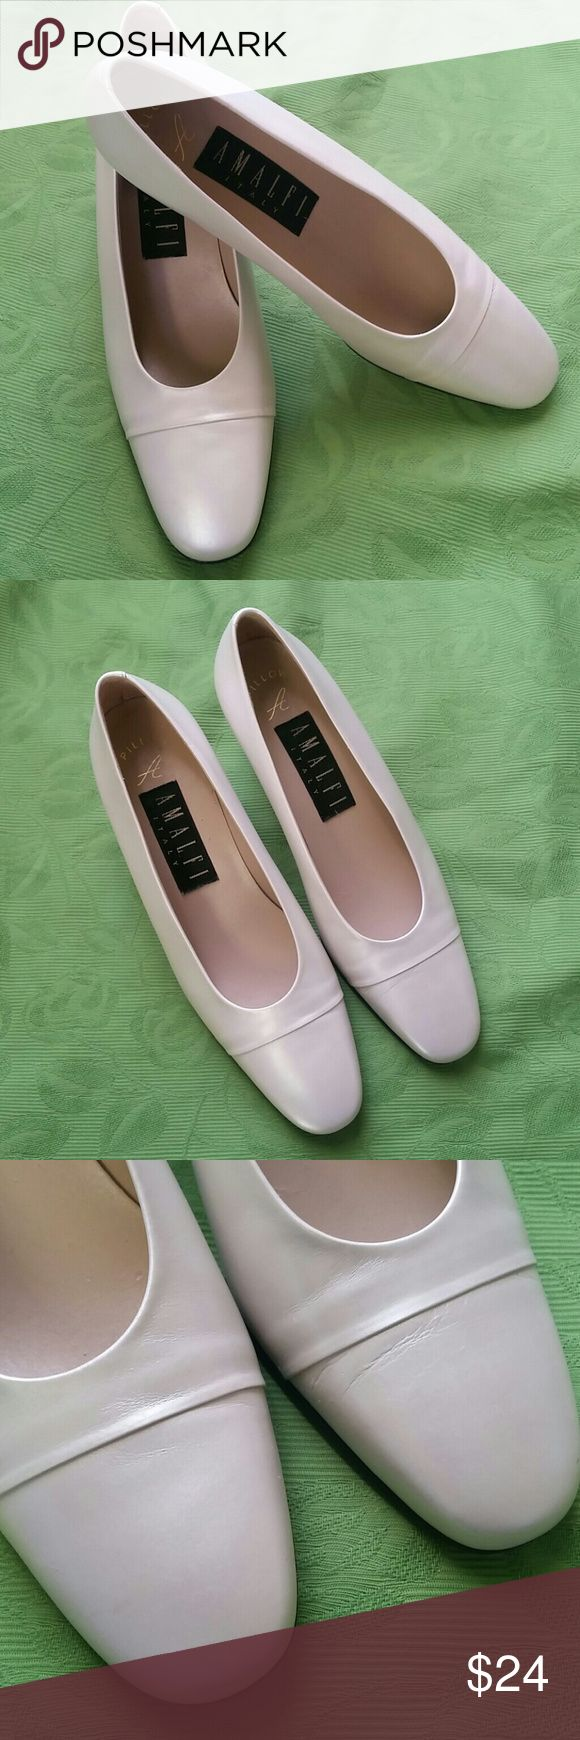 """Amalfi Pearl Leather Pumps Size 7.5B Made in Italy A fabulous pair of pearl leather pumps by Amalfi in excellent preowned condition. Size 7.5B. Made in Italy. Leather has a soft sheen like a pearl. 2.25"""" block heels. Pillow technology for comfort. Amalfi Shoes Heels"""